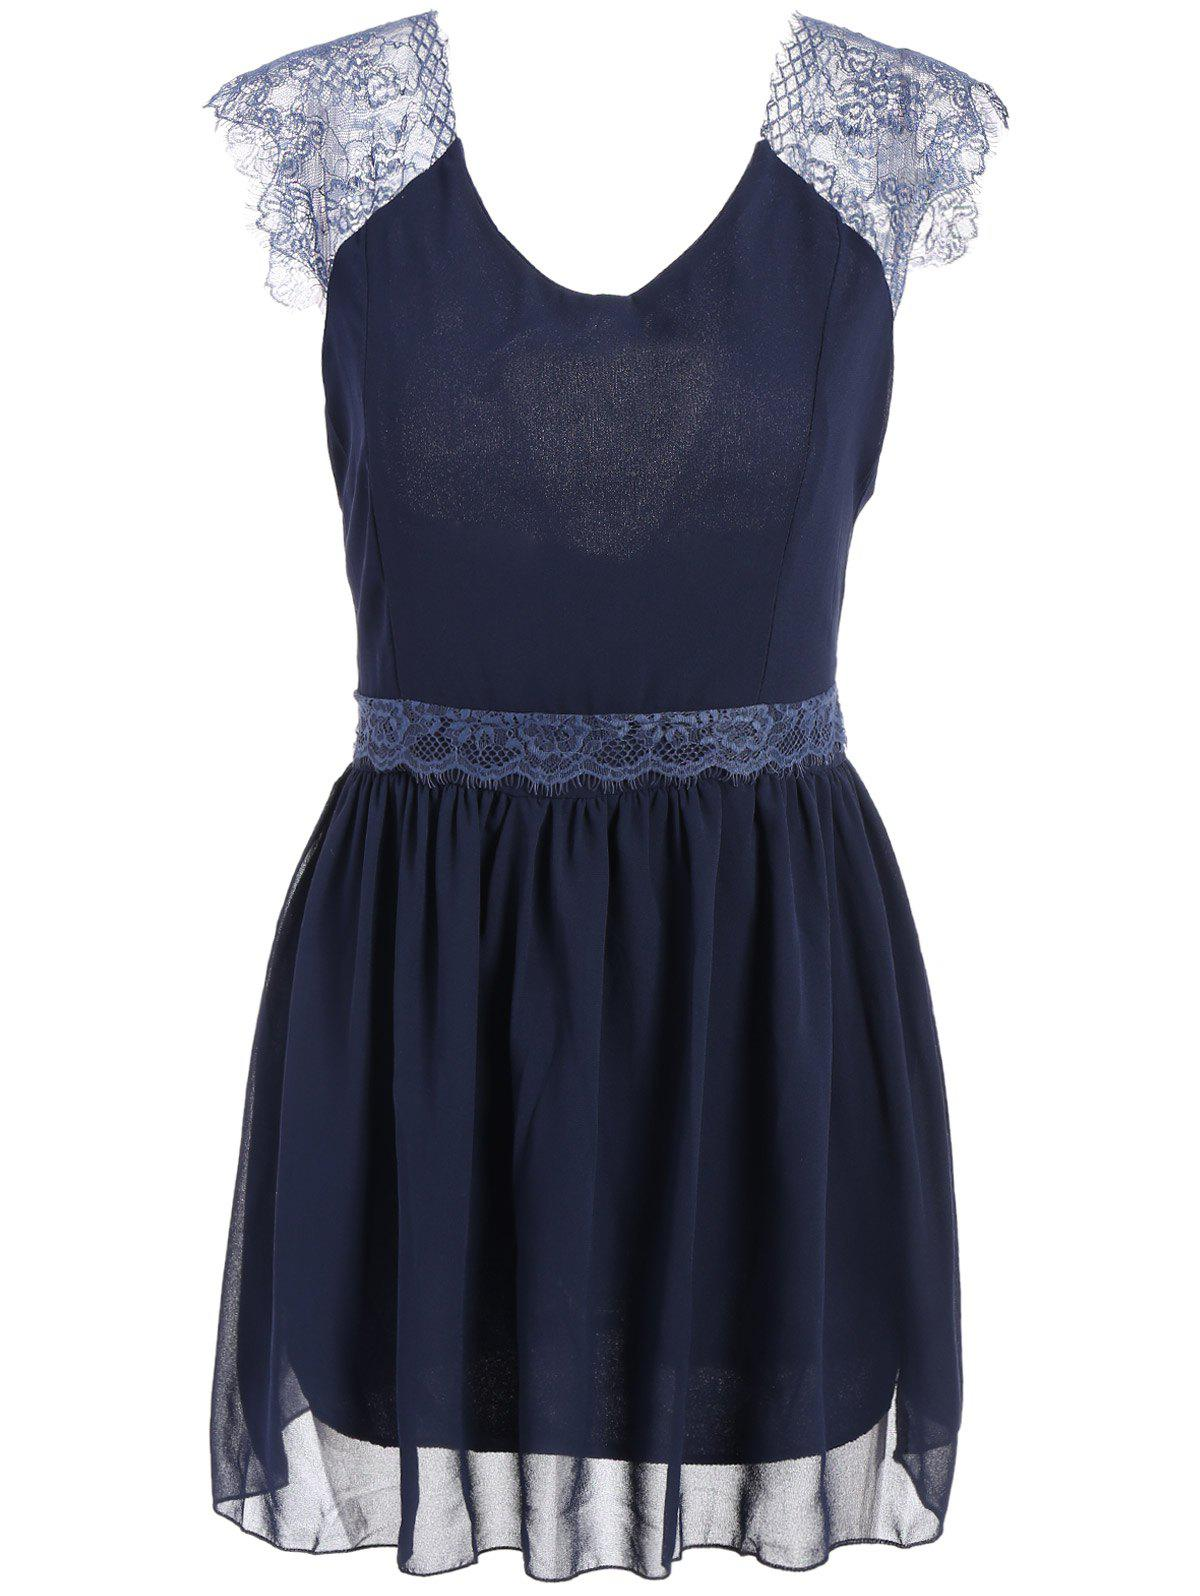 Buy Trendy Style Sleeveless Lace Splicing Solid Color Backless Women's Dress